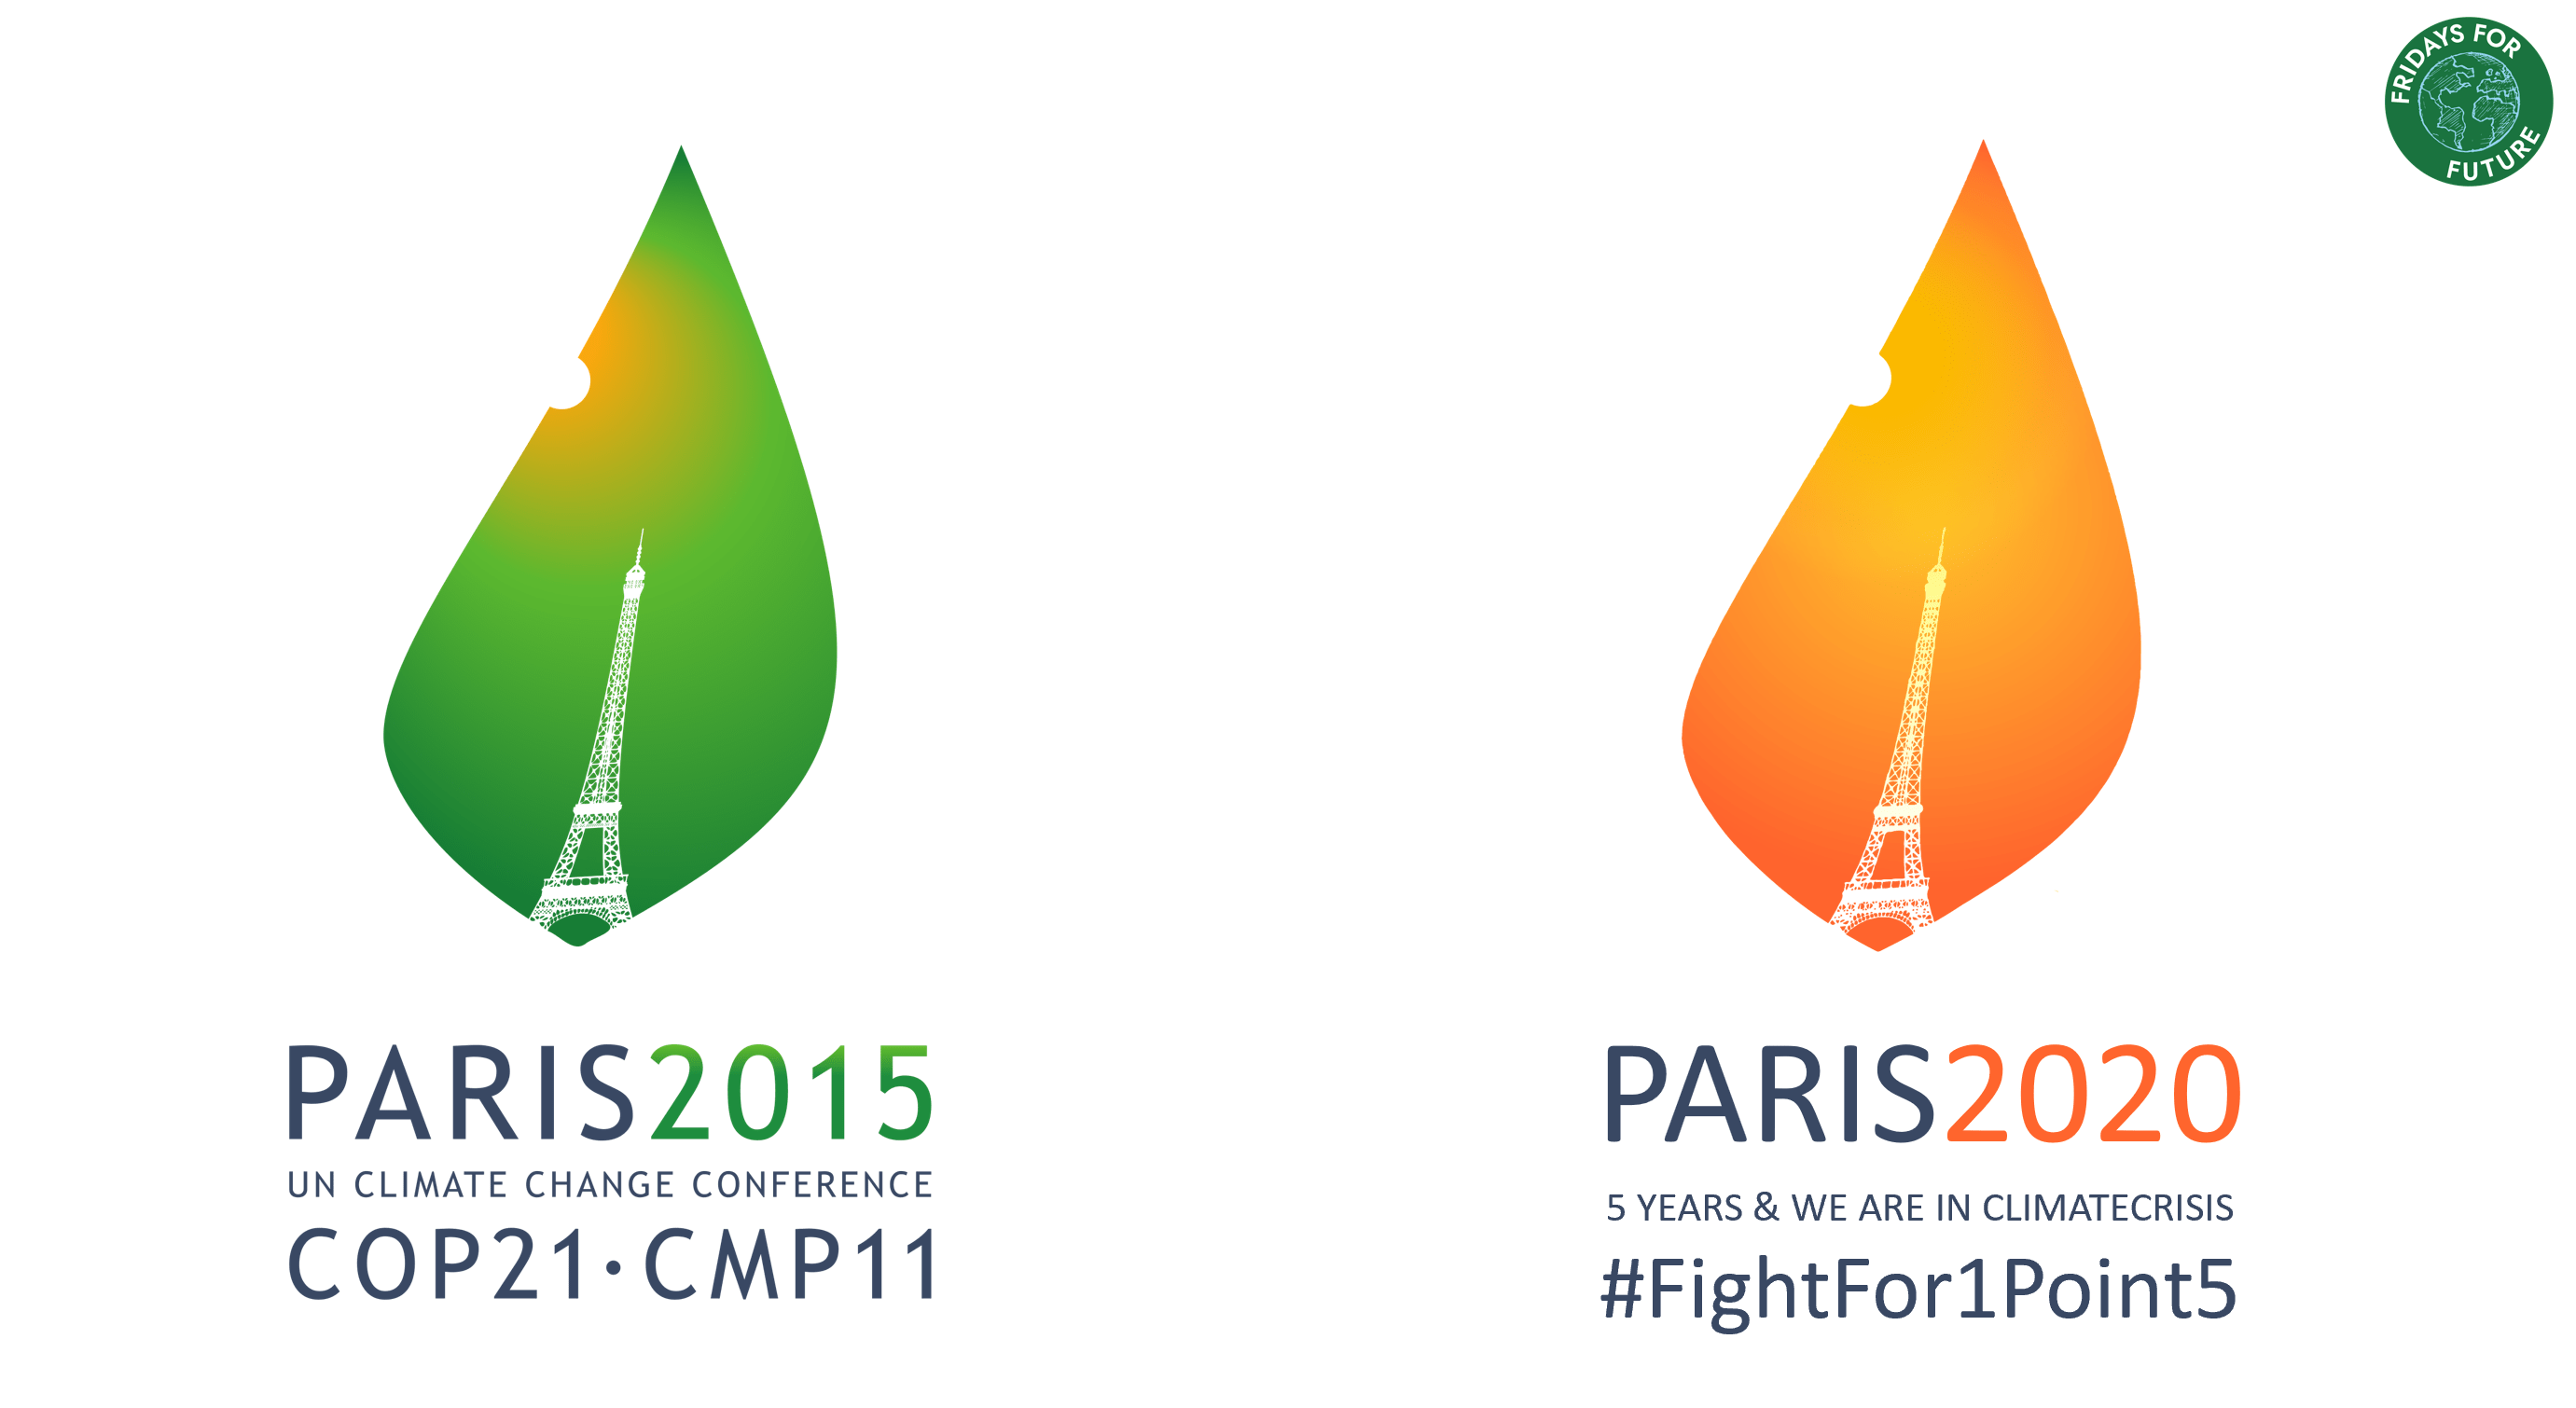 FightFor1Point5 - COP21 vs 5 years later